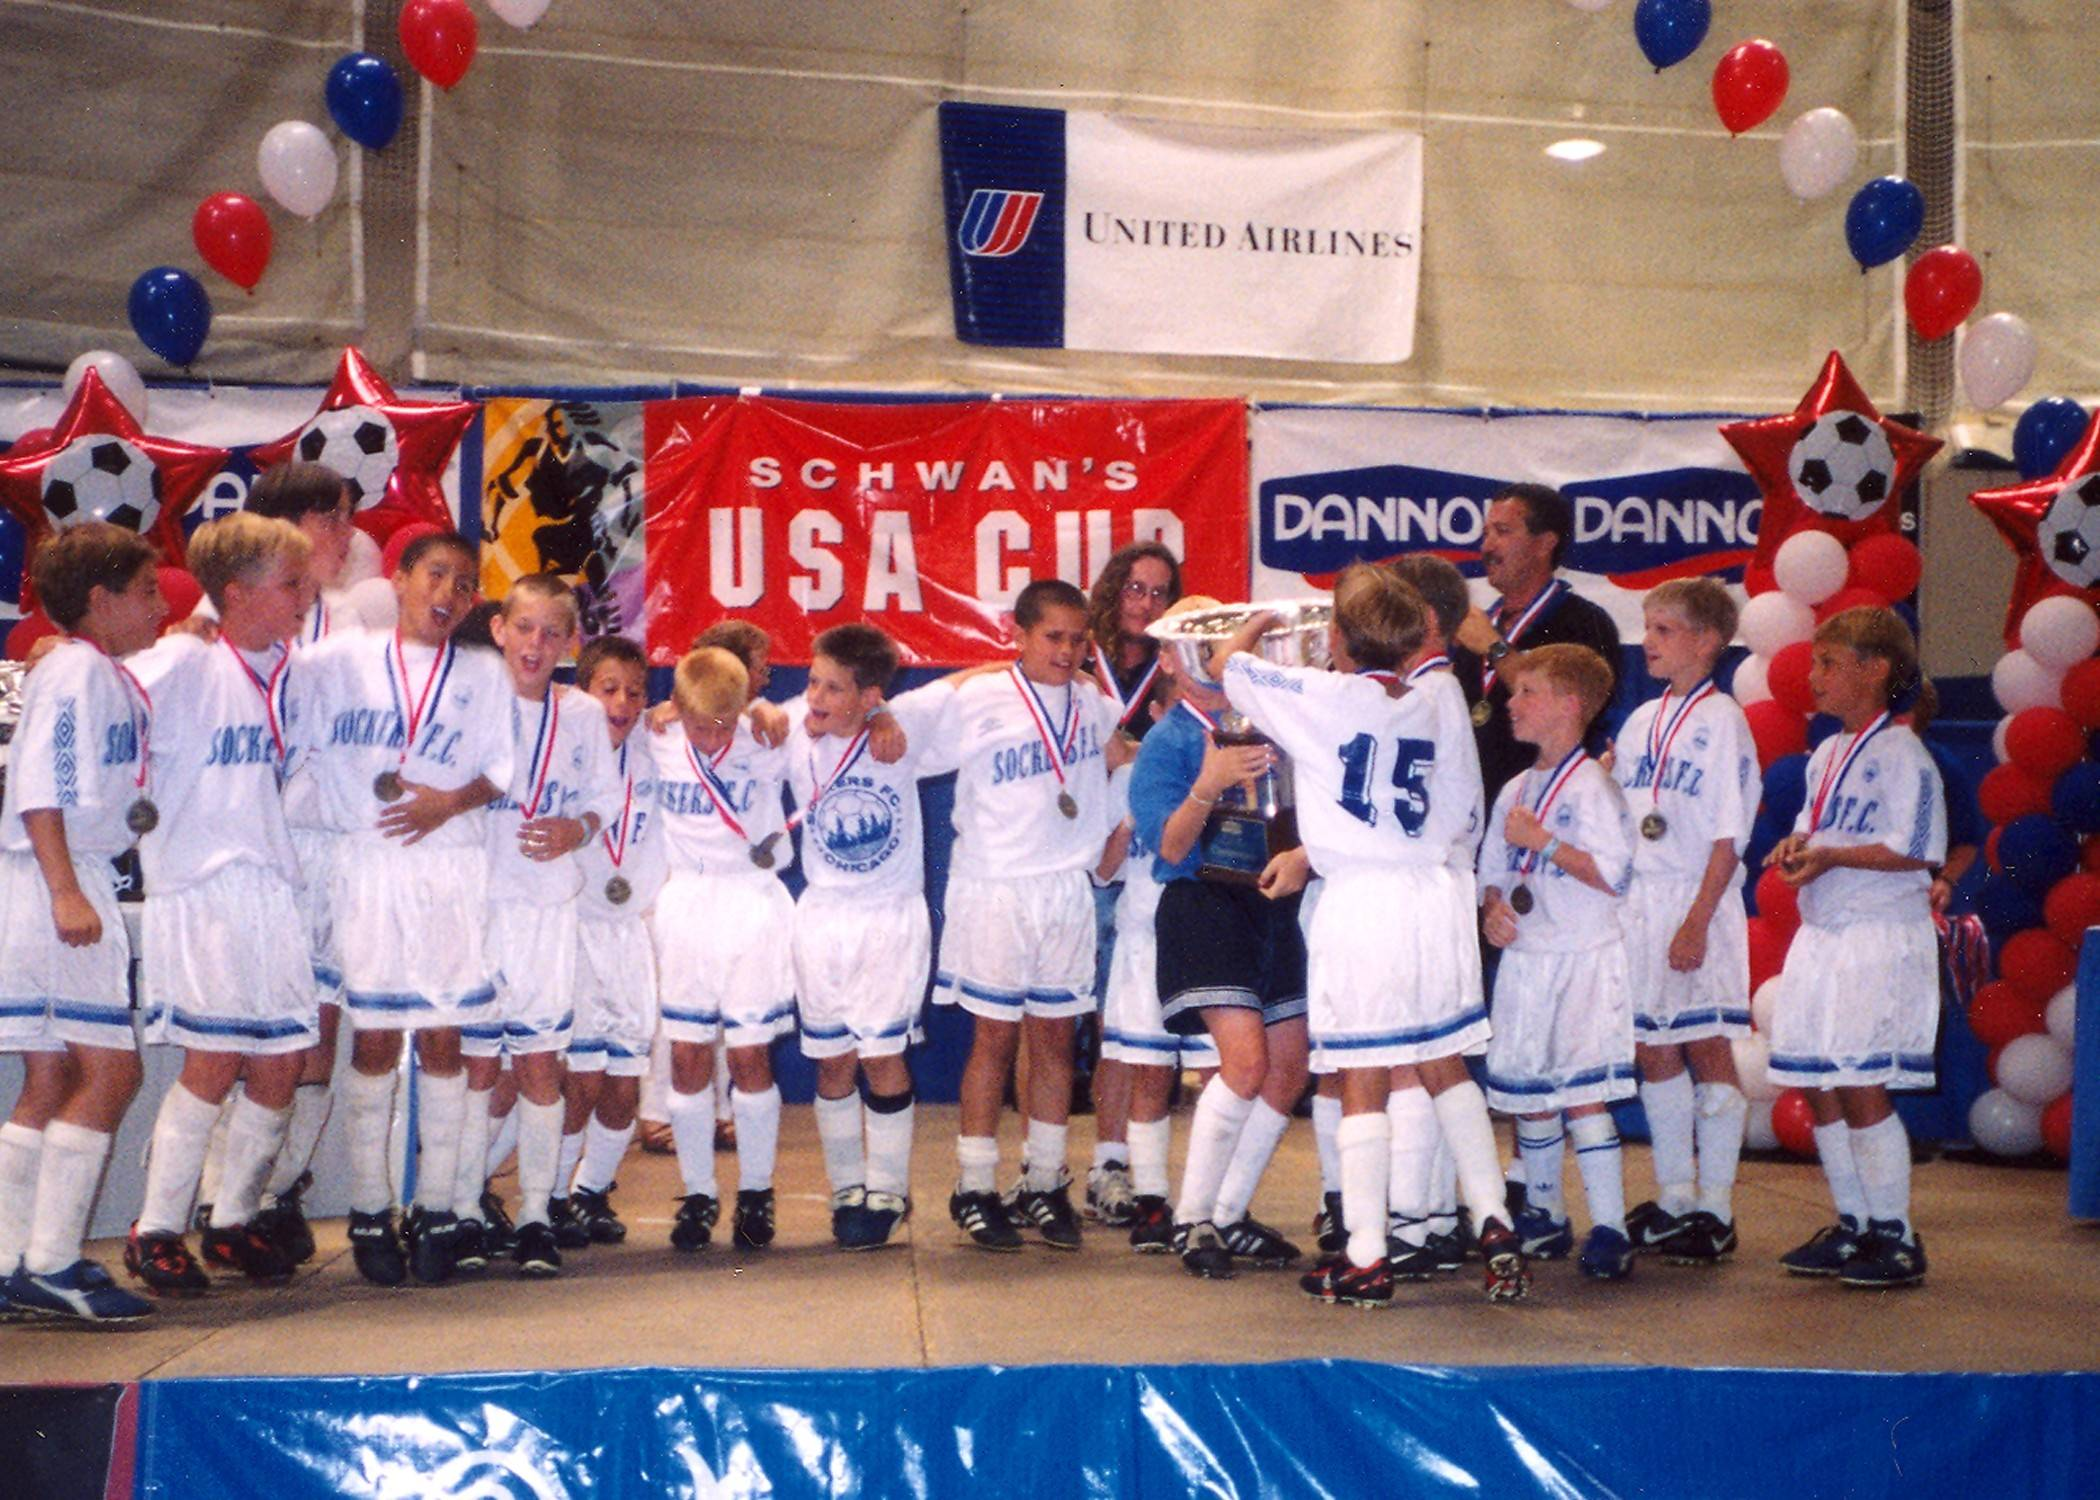 Having played on the Sockers FC team that won the USA Cup when he was 11, former Palatine resident Michael Bradley, second from left, is a starting midfielder for the U.S. National Team playing for soccer's World Cup.